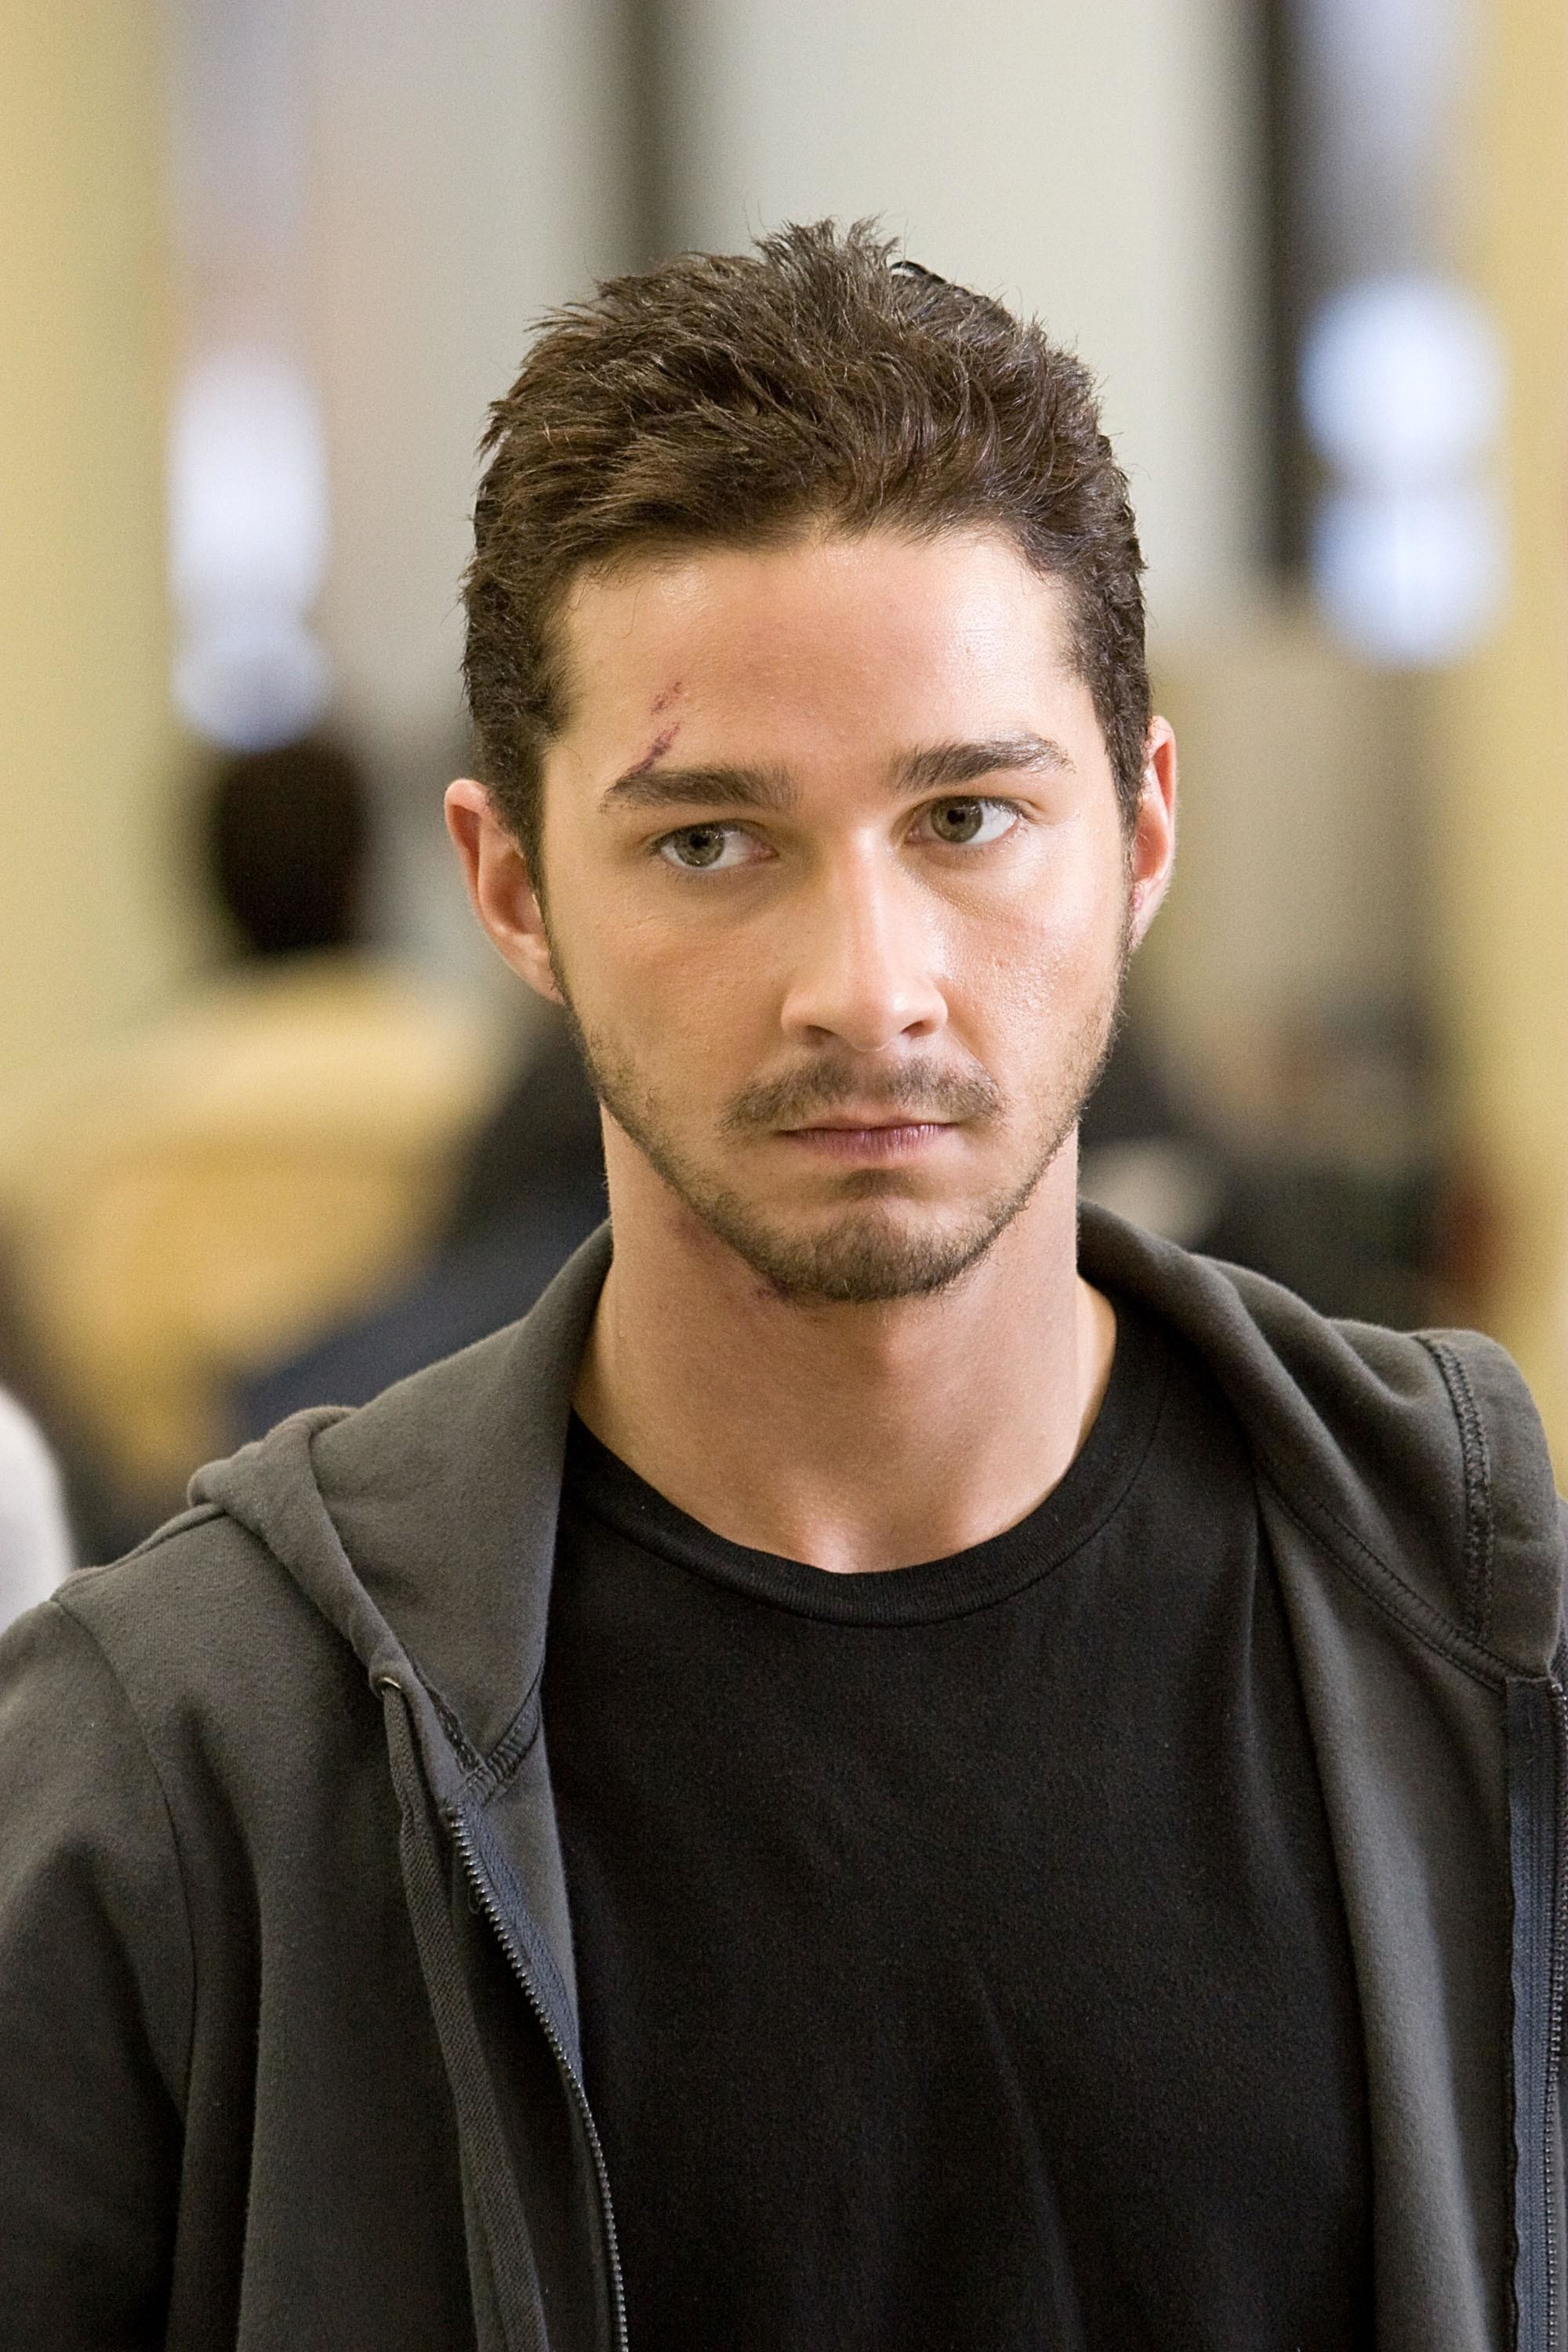 Shia LaBeouf Motivation Wallpaper, Special Photos of Shia LaBeouf .